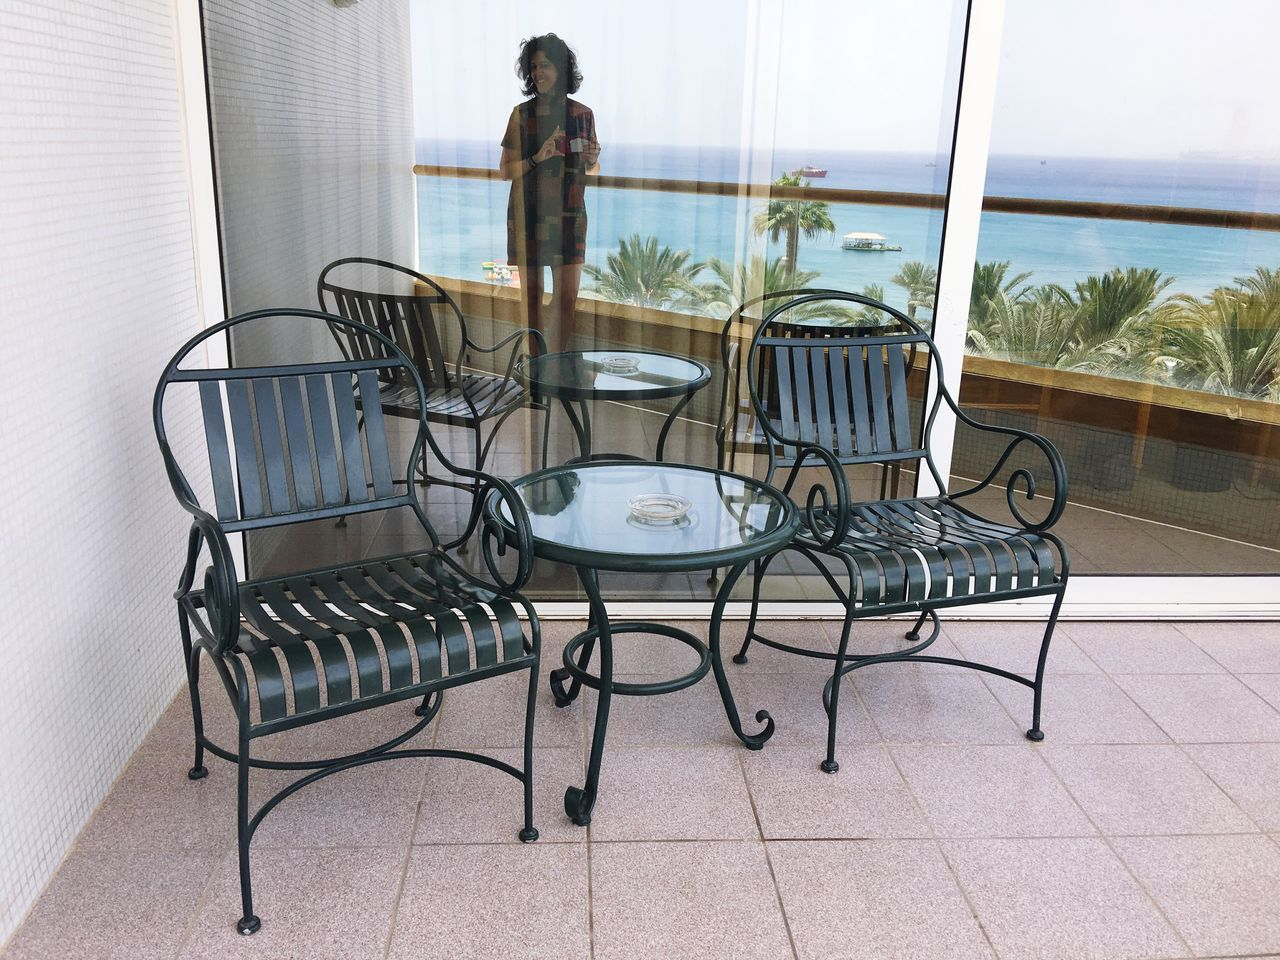 Table Chair Window Hotel View Indoors  One Person People Adult Vacations One Woman Only Lifestyles Standing Sea Reflection Mirrorselfie Mirror Mirror Reflection Women Leisure Activity Summer Water Relaxation Travel Outdoors Porch